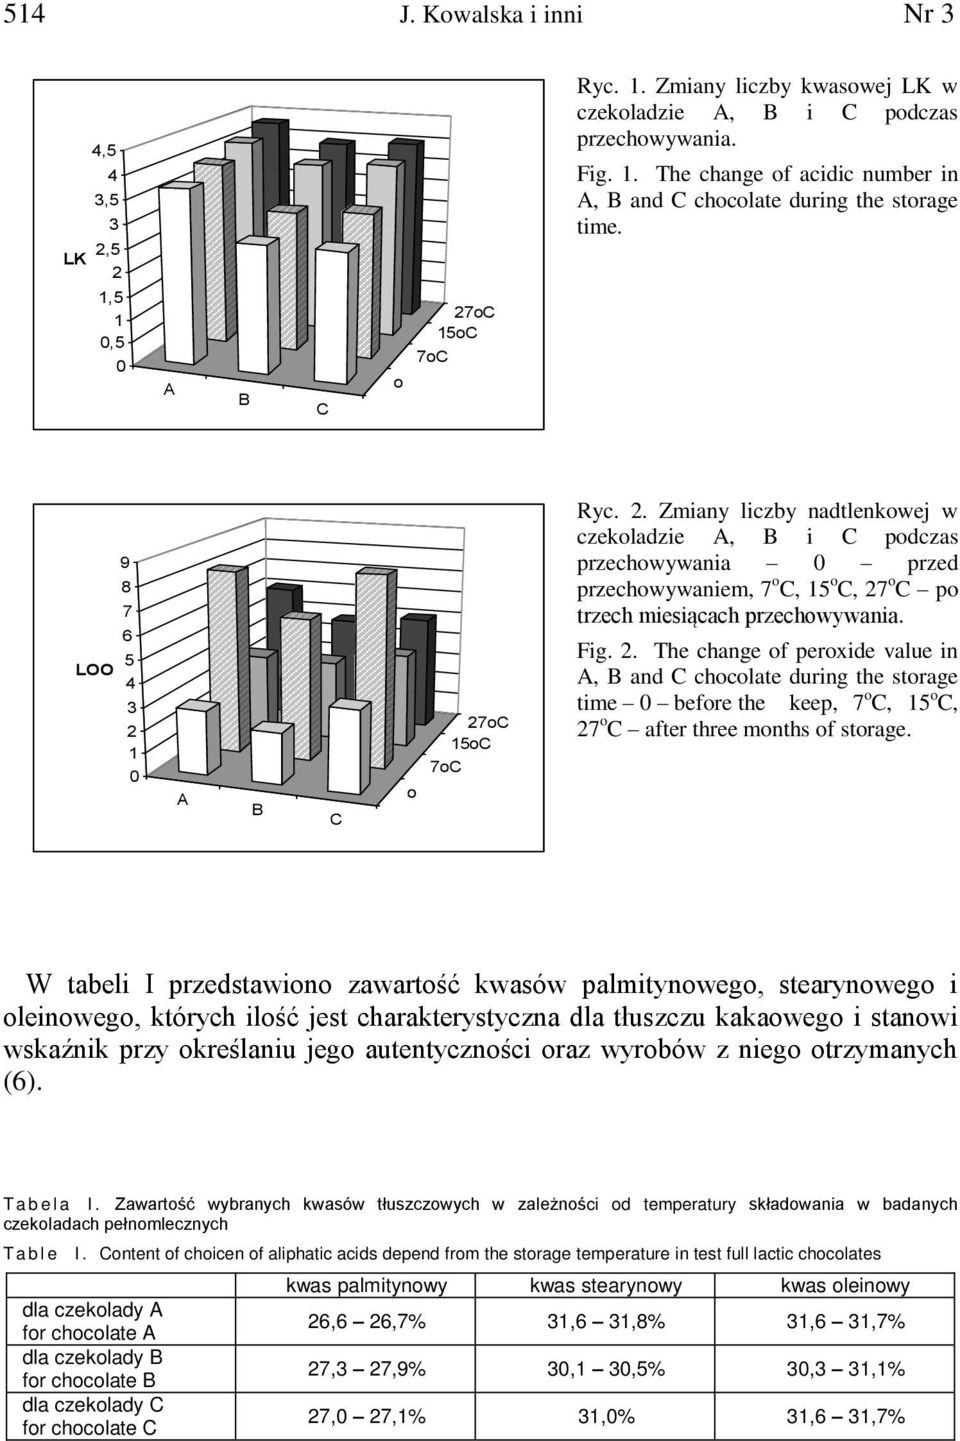 Fig. 2. The change of peroxide value in A, B and C chocolate during the storage time 0 before the keep, 7 o C, 15 o C, 27 o C after three months of storage.